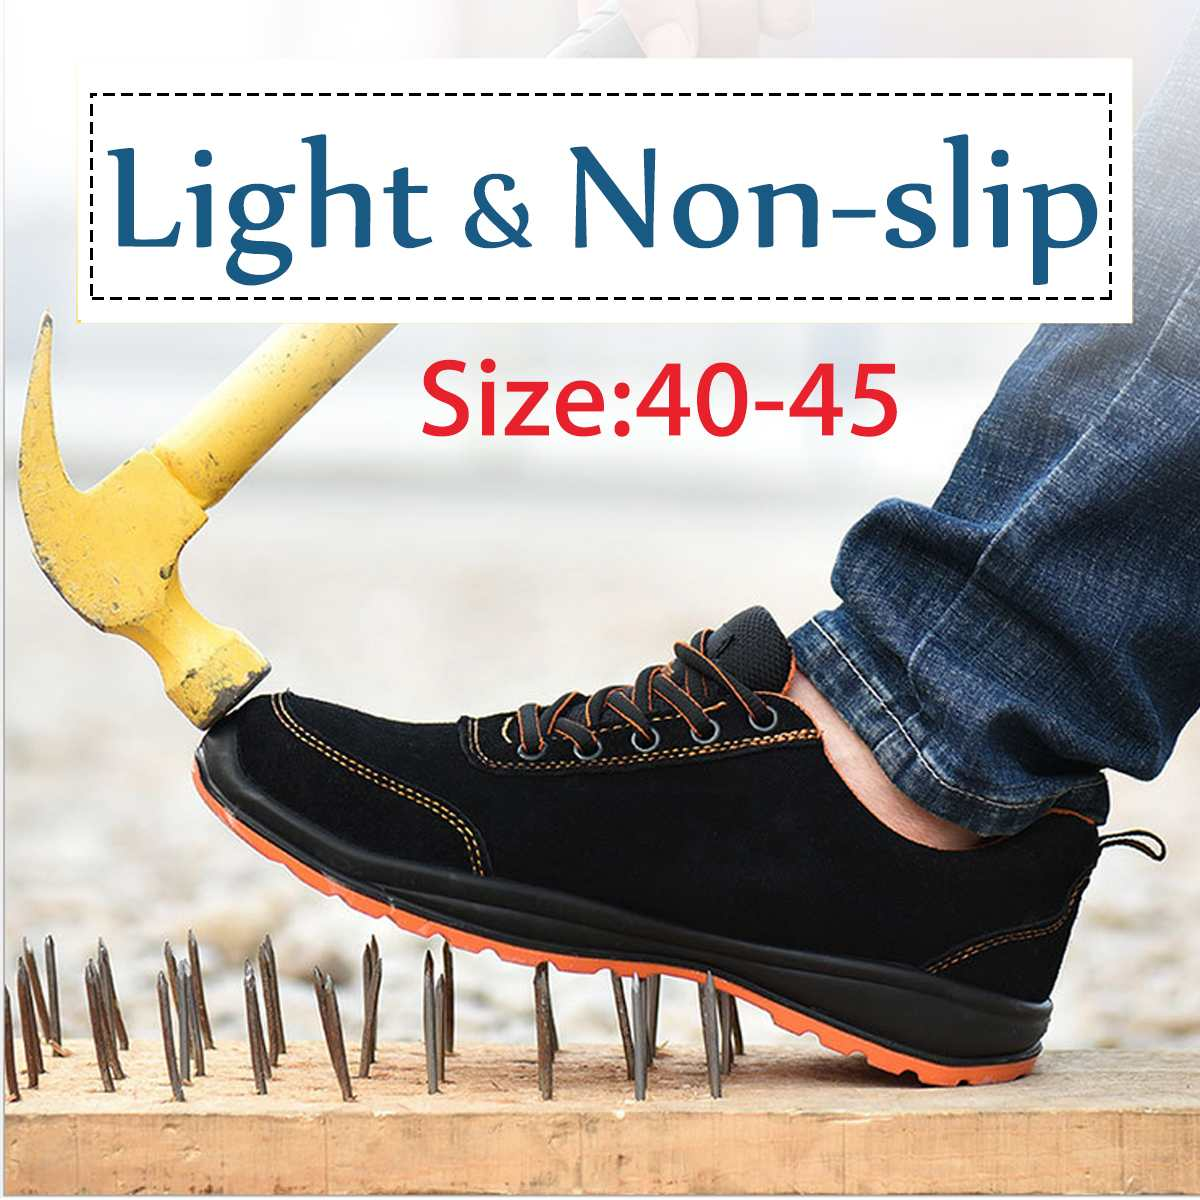 Men Outdoor Anti-slip Steel Toe Cap Work Safety Shoes Anti-puncture Breathable Construction Safety Boots Shoes 40 41 42 43 44 45